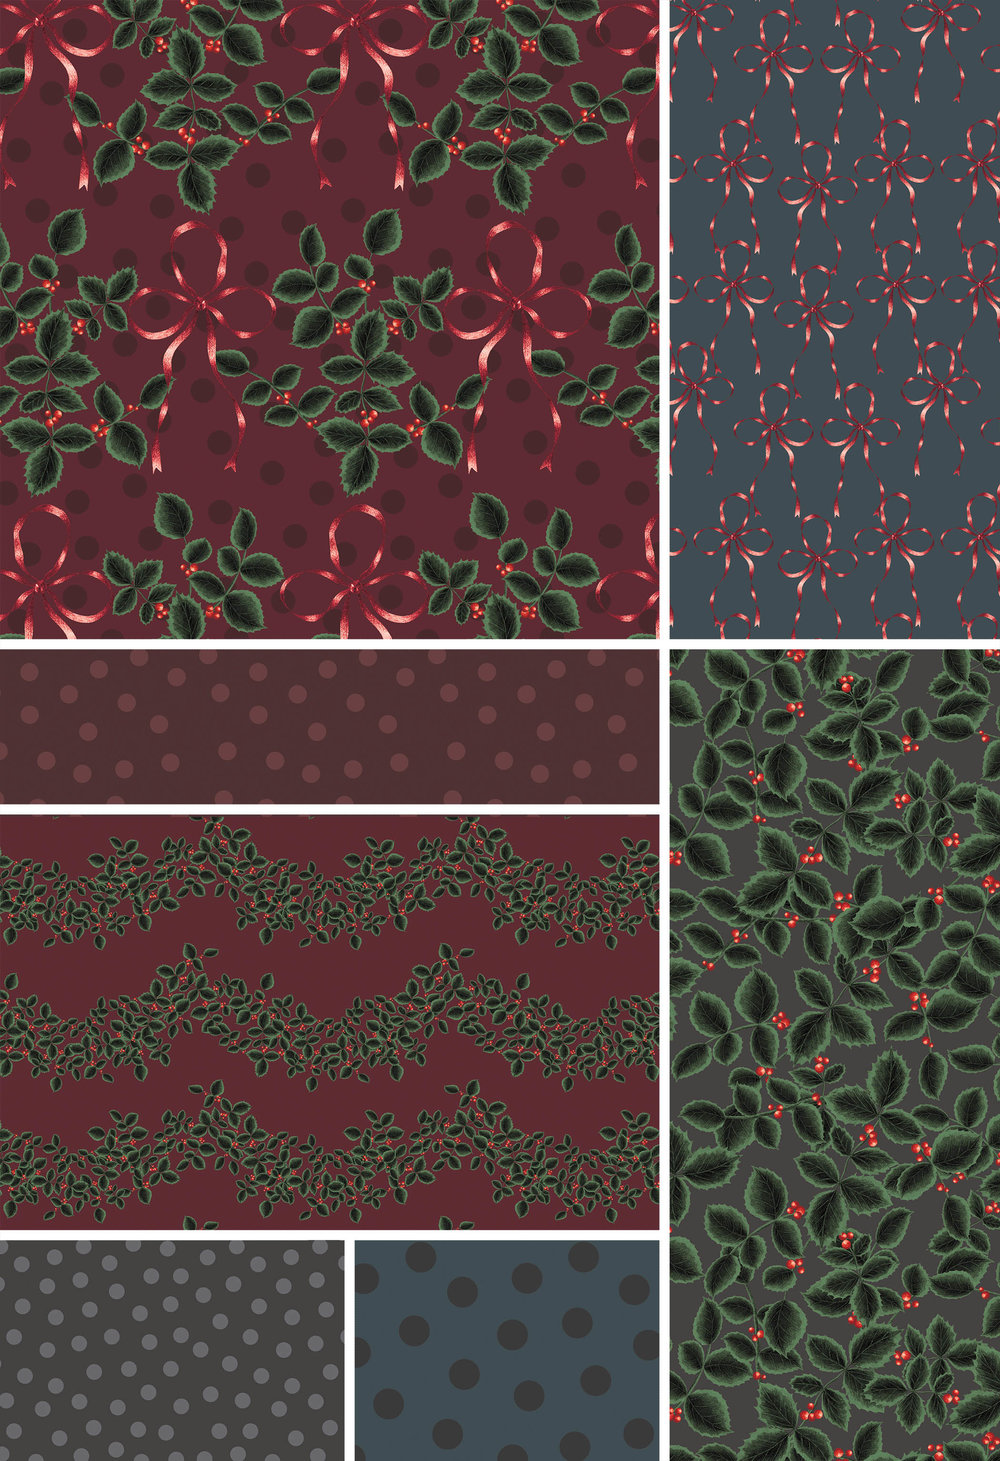 VARIEGATED HOLLY COLLECTION